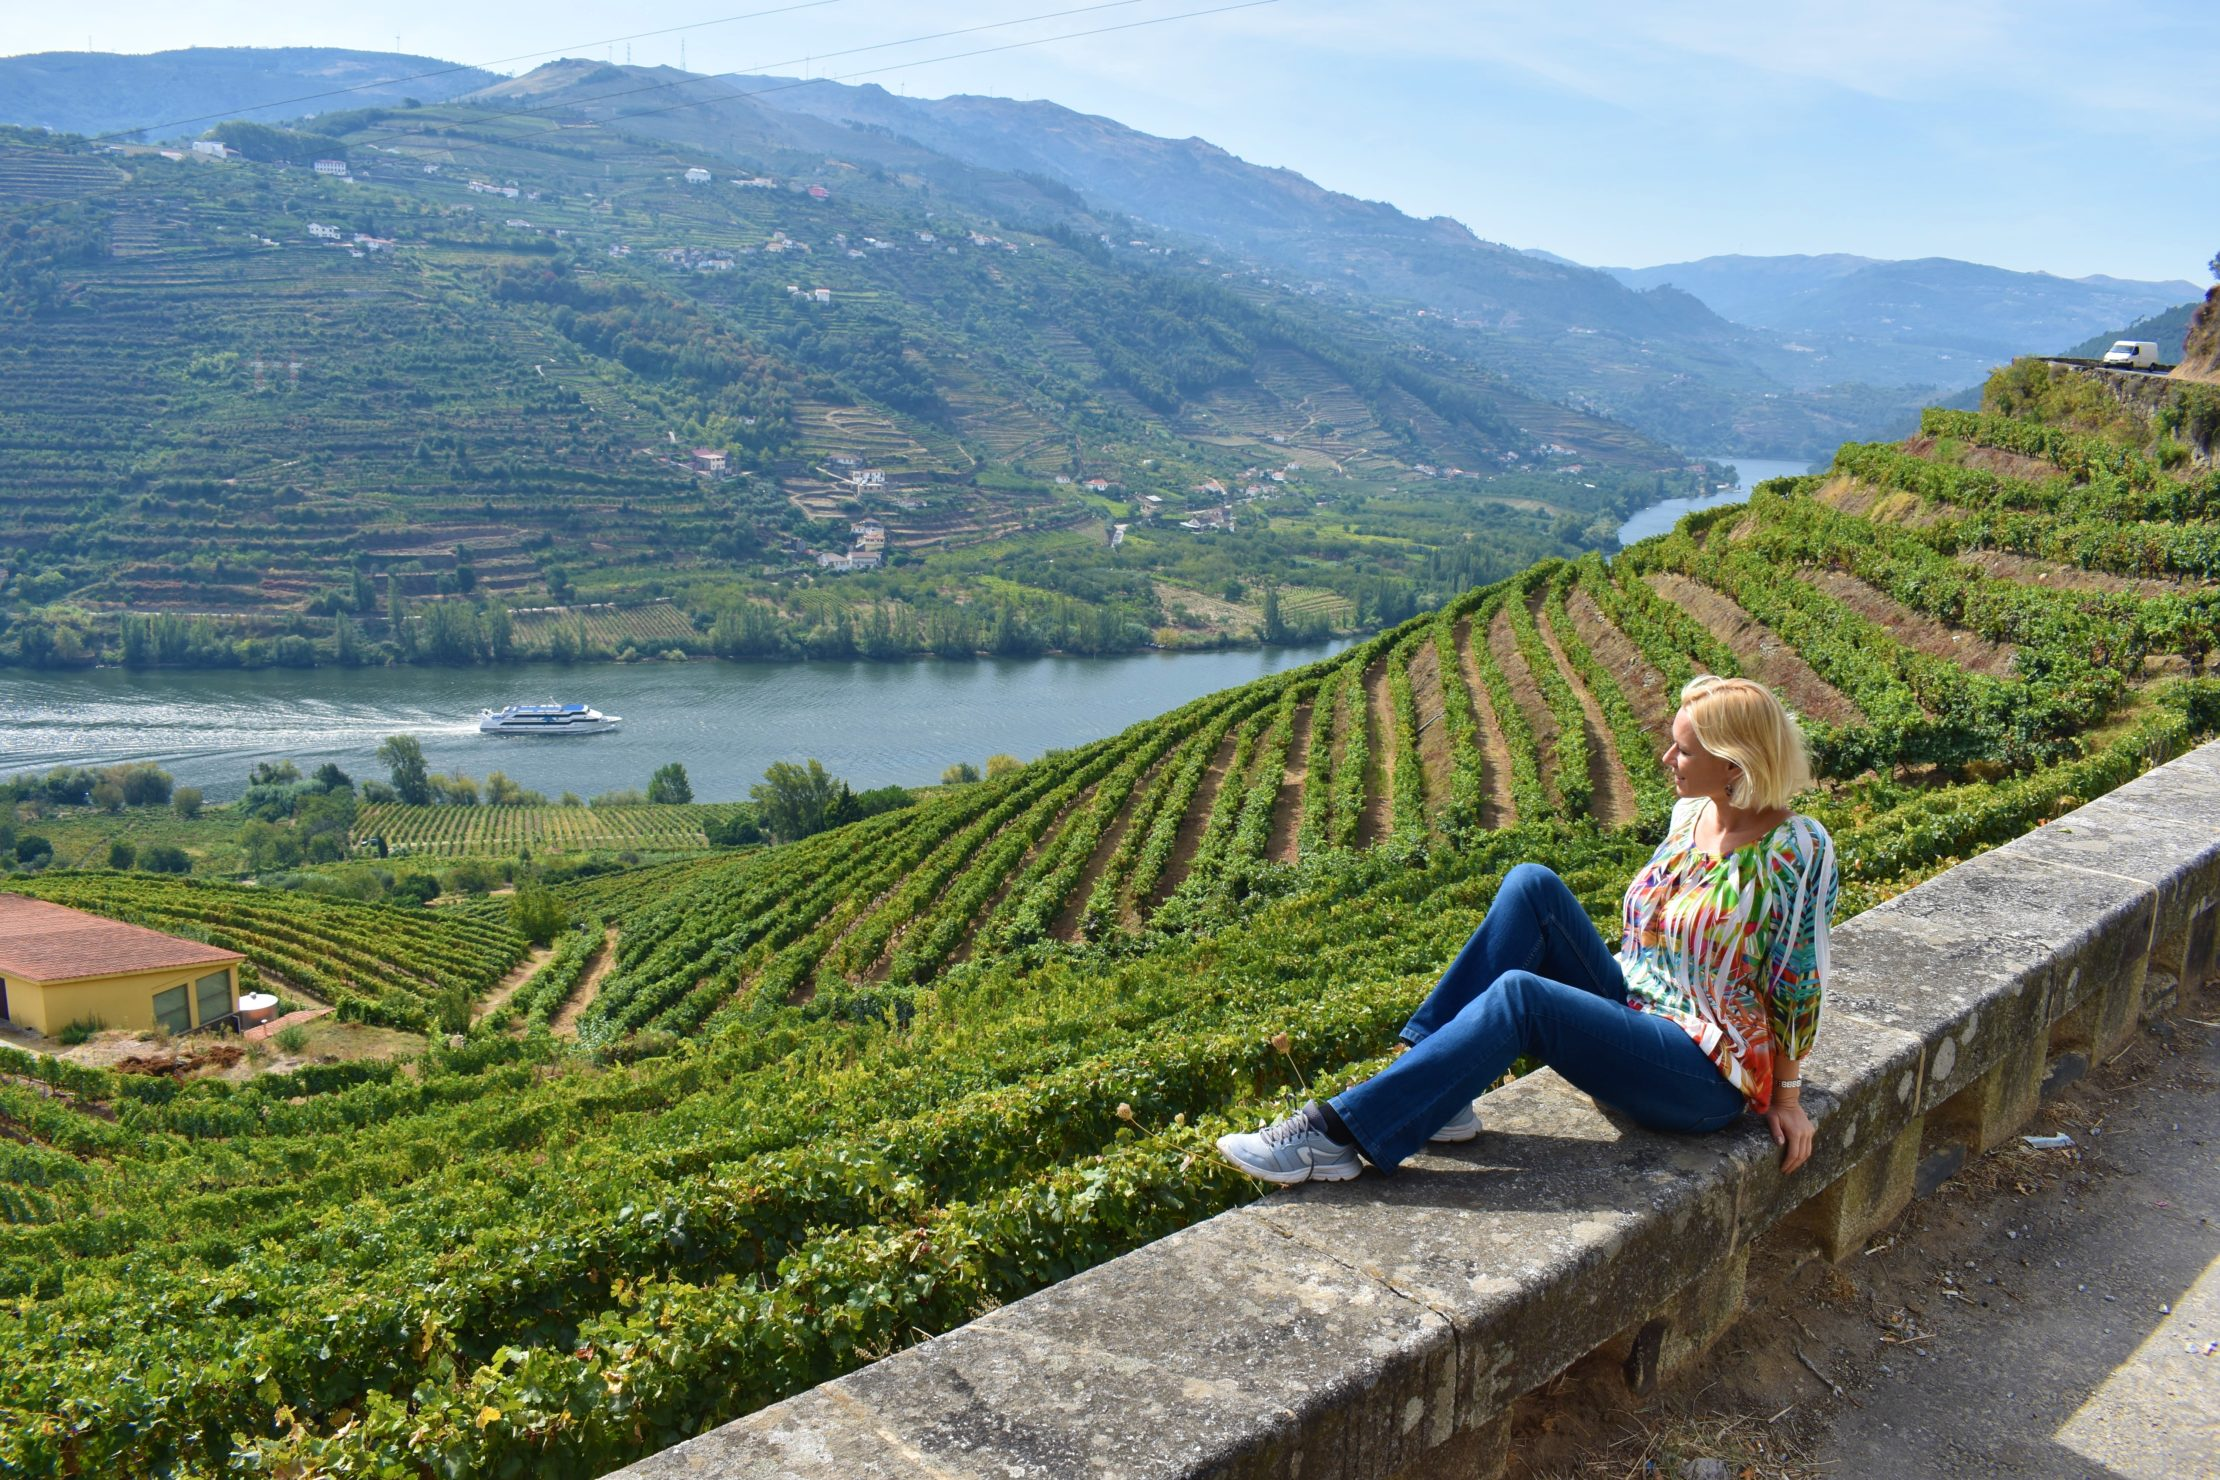 The Douro Valley vinyards in Portugal